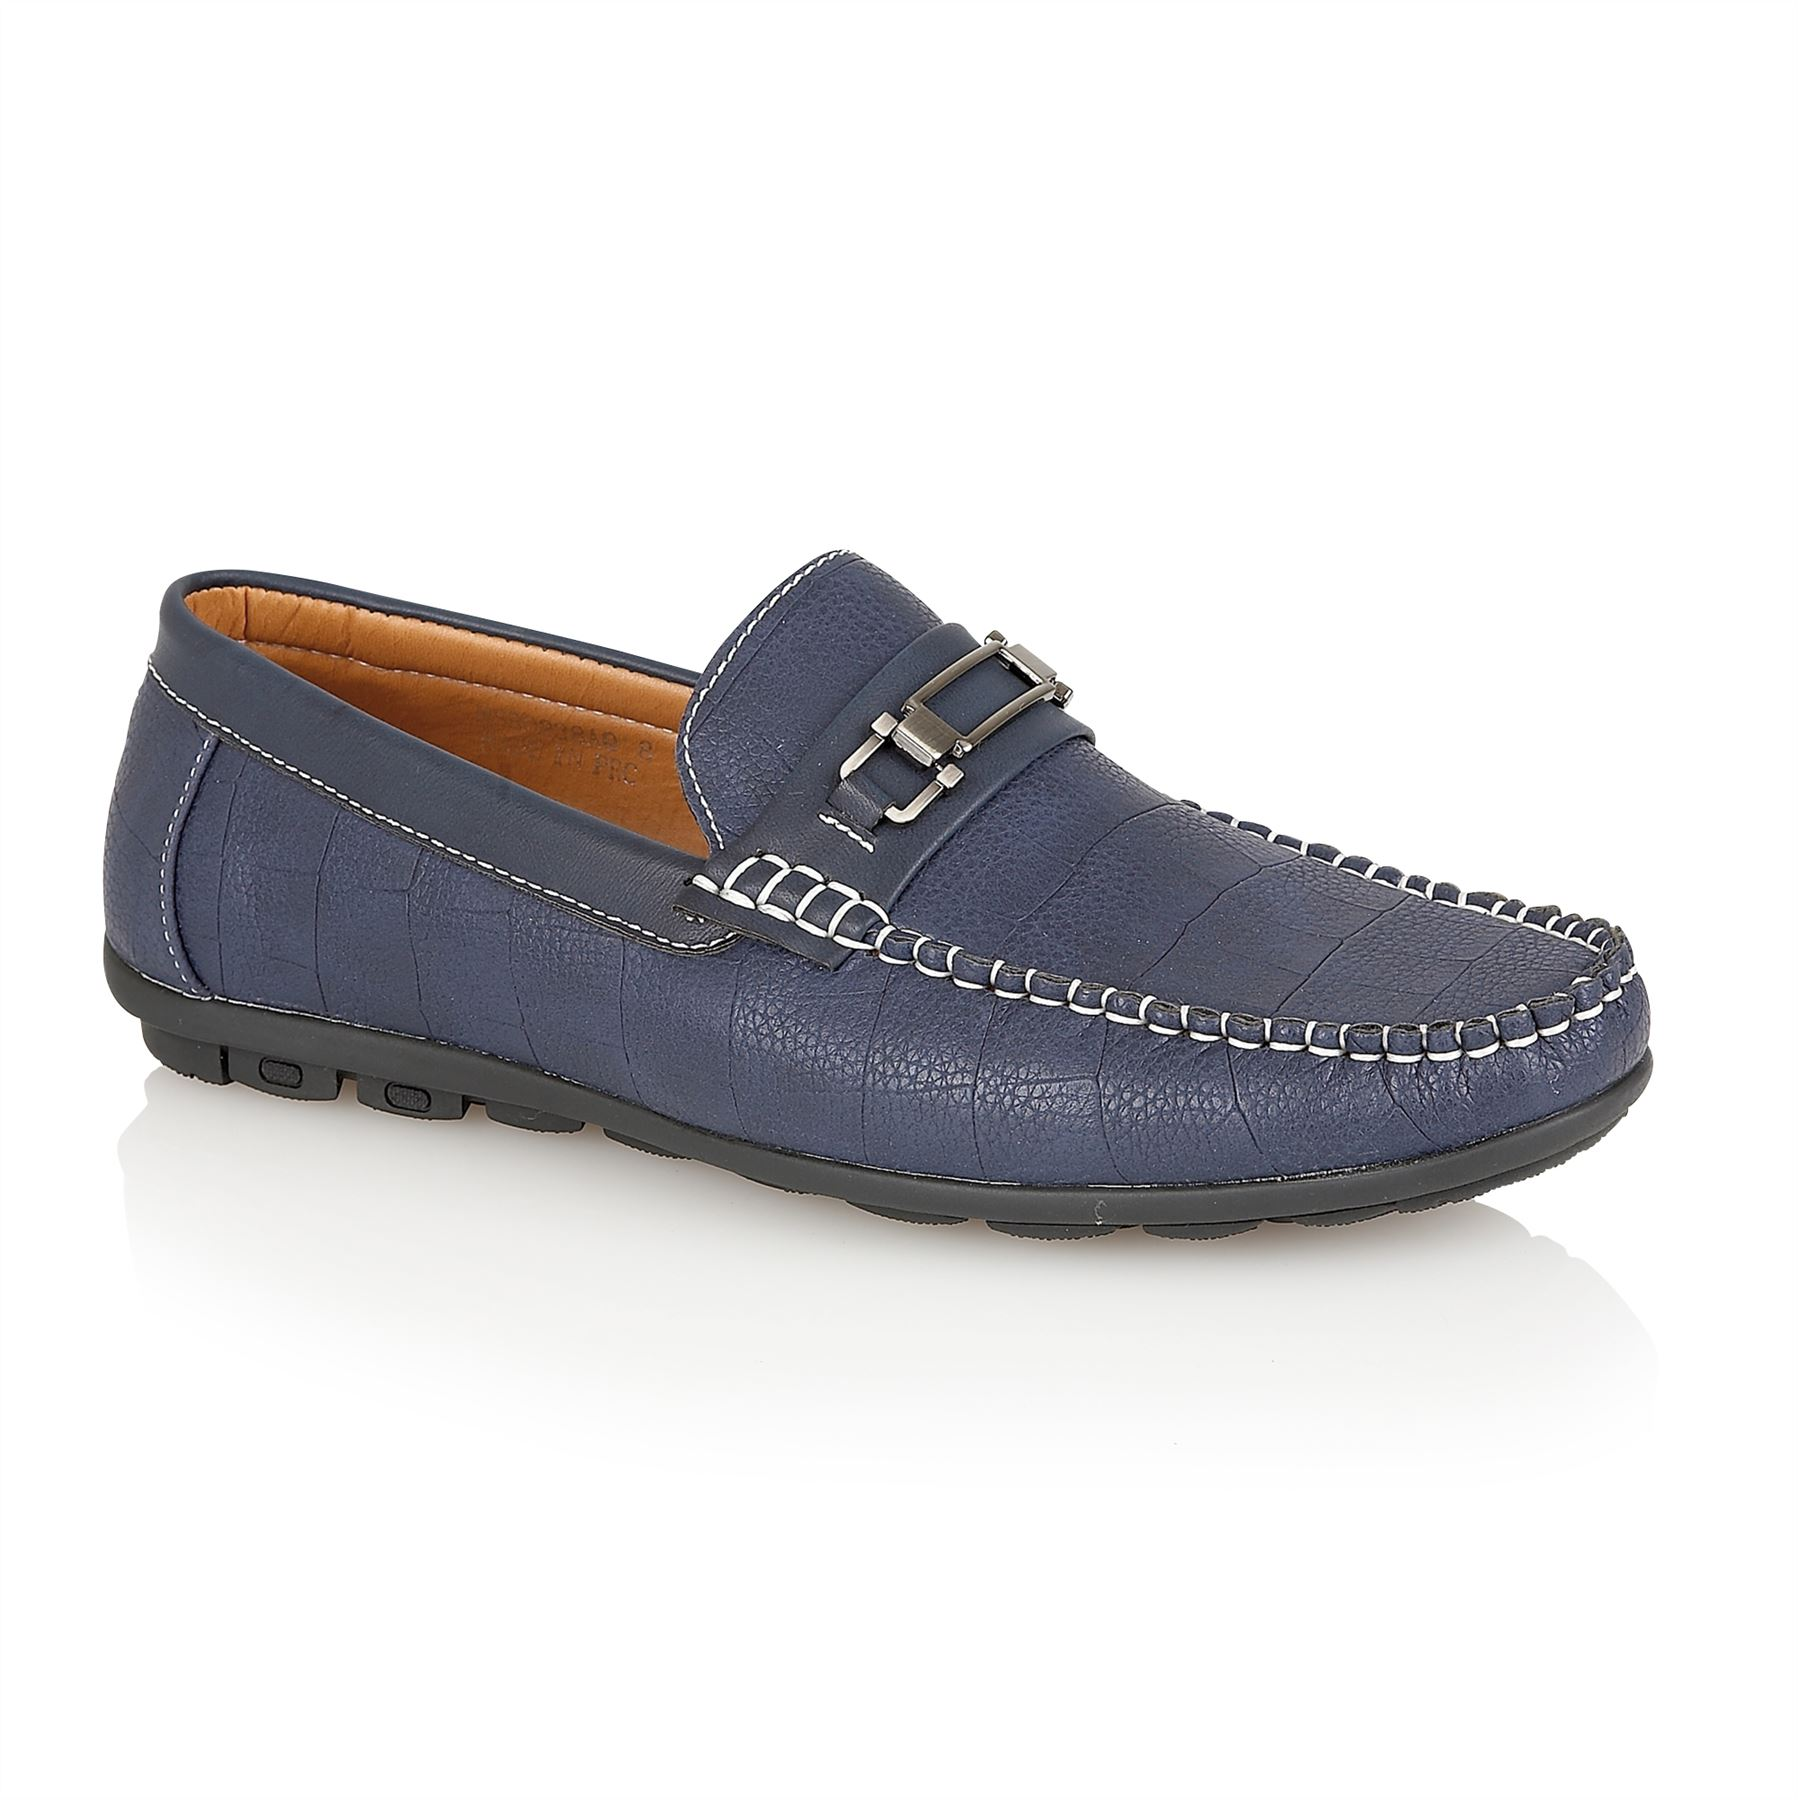 afe9cbe4673 Mens Designer Leather Look Italian Loafers Casual Moccasin Driving Shoes  Size